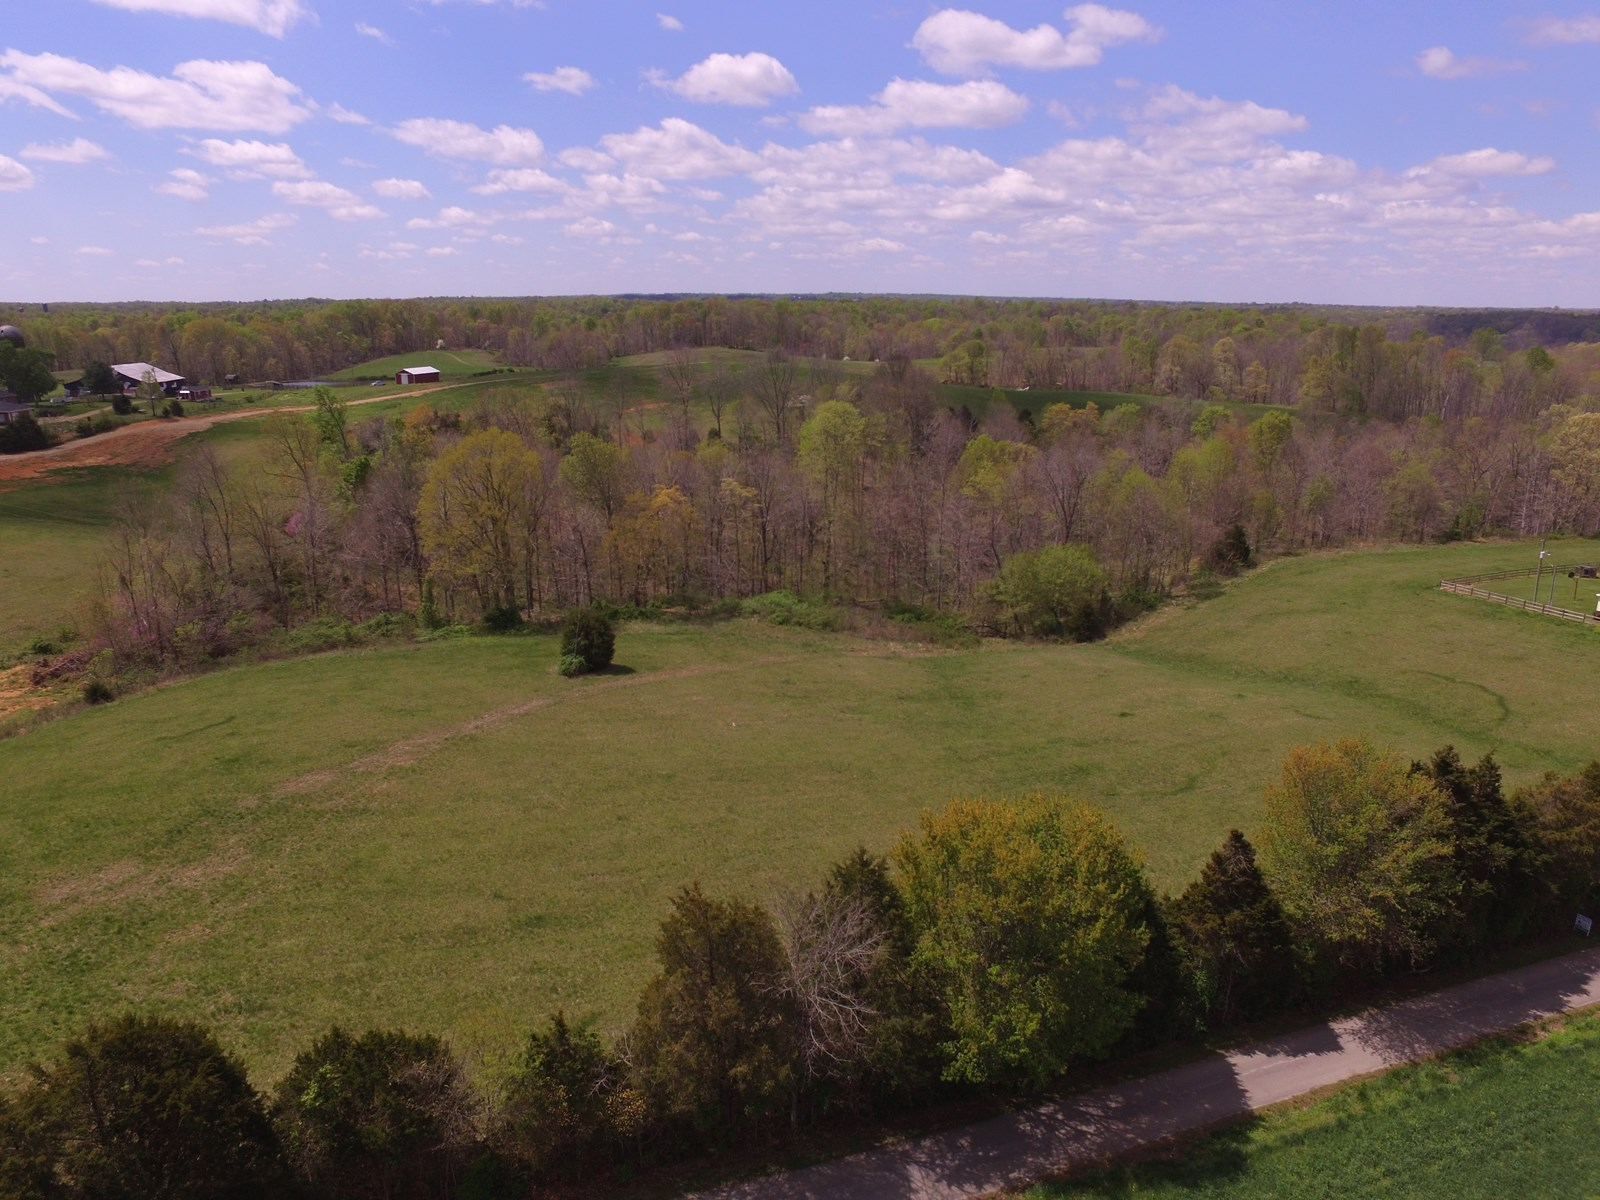 UNRESTRICTED ACREAGE-BUILDING SITES-HUNTING-LIBERTY, KY.